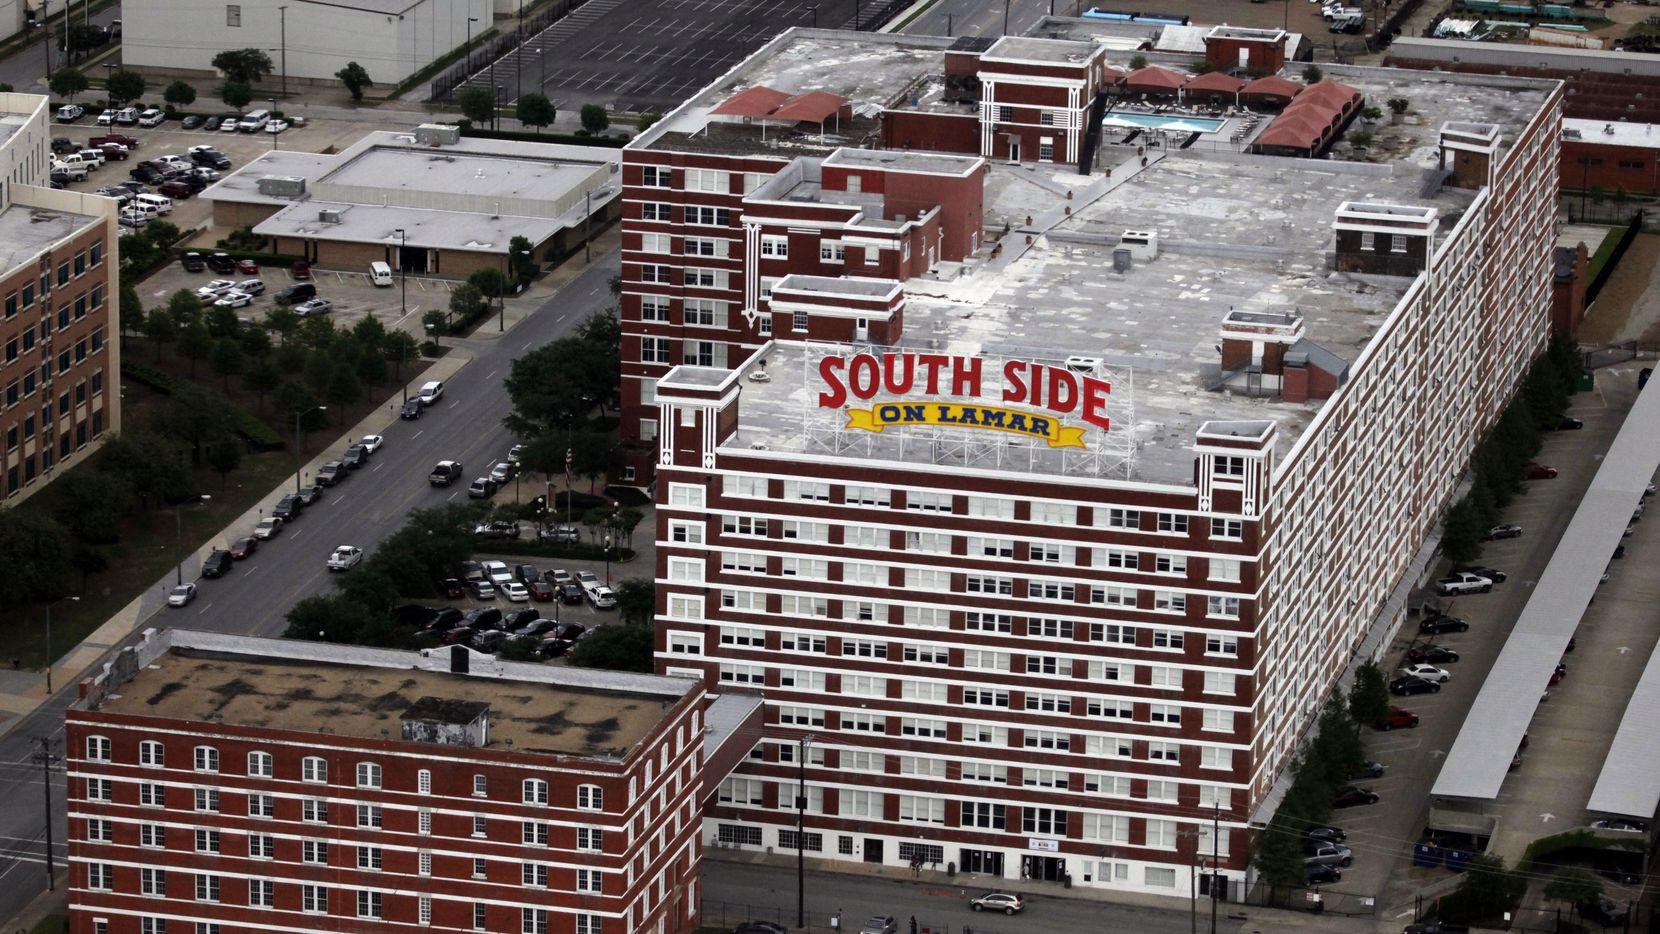 Matthews Southwest developed the nearby South Side on Lamar project located just east of the Sportatorium site.